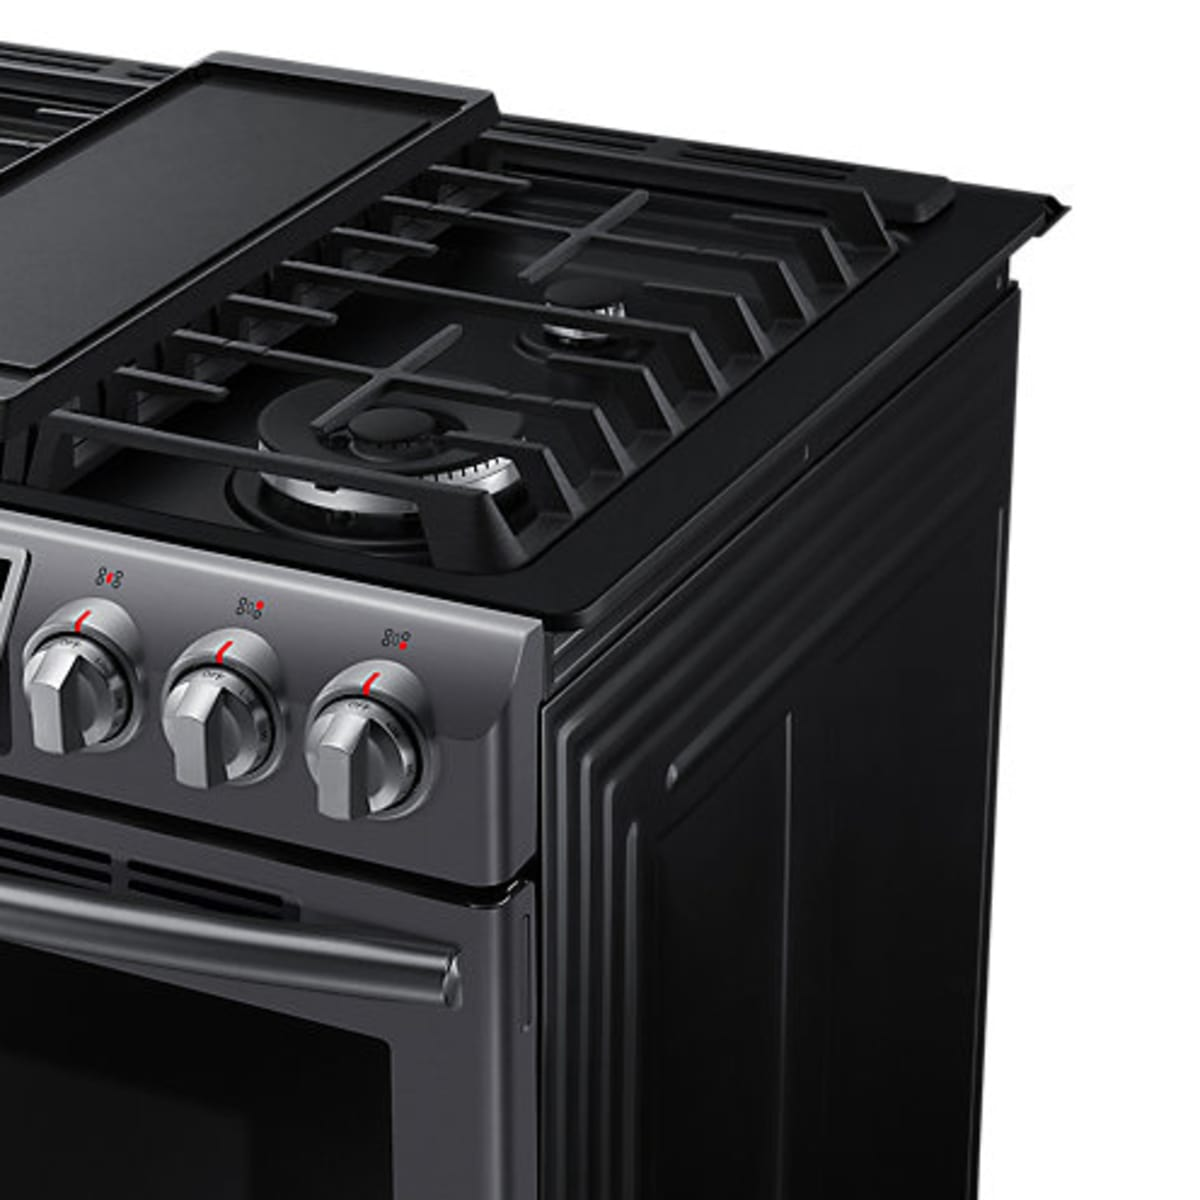 Best Gas Stoves 2019 The Best Gas Ranges of 2019   Reviewed Ovens